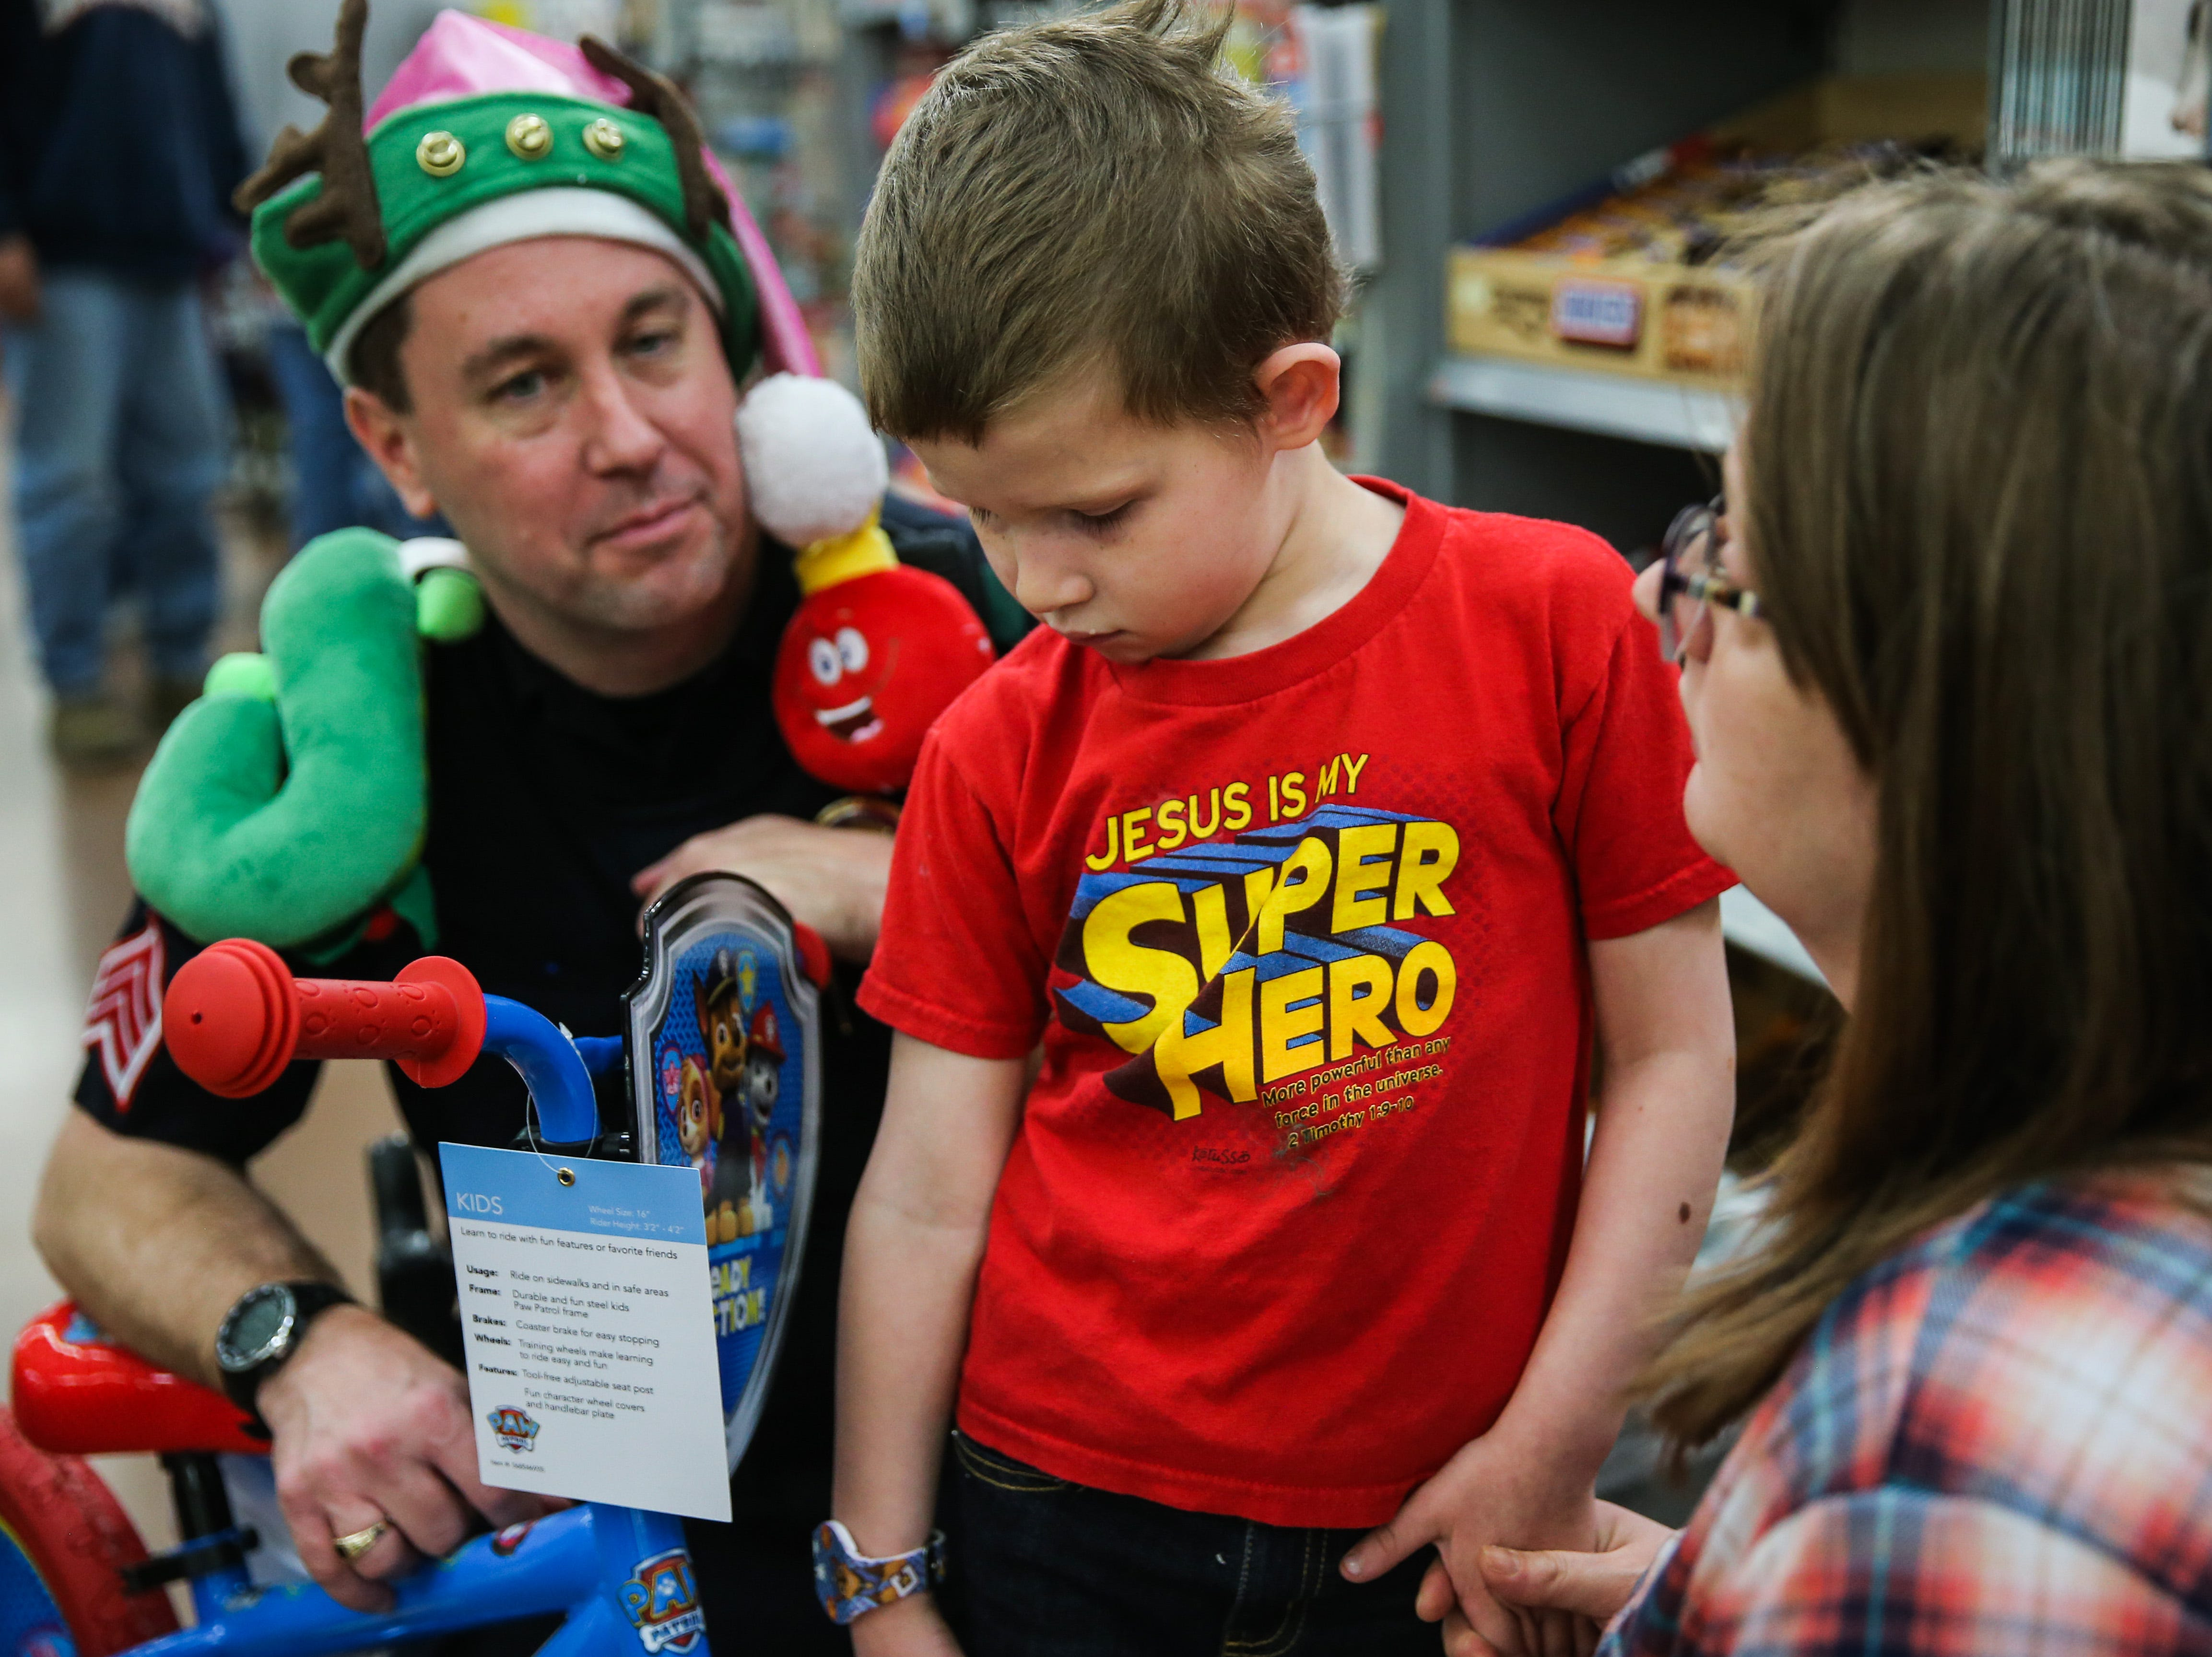 Sgt. Daniel Williams shops with Kyle Bible, 5, during Shop with a Cop event Saturday, Dec. 15, 2018, at Walmart.